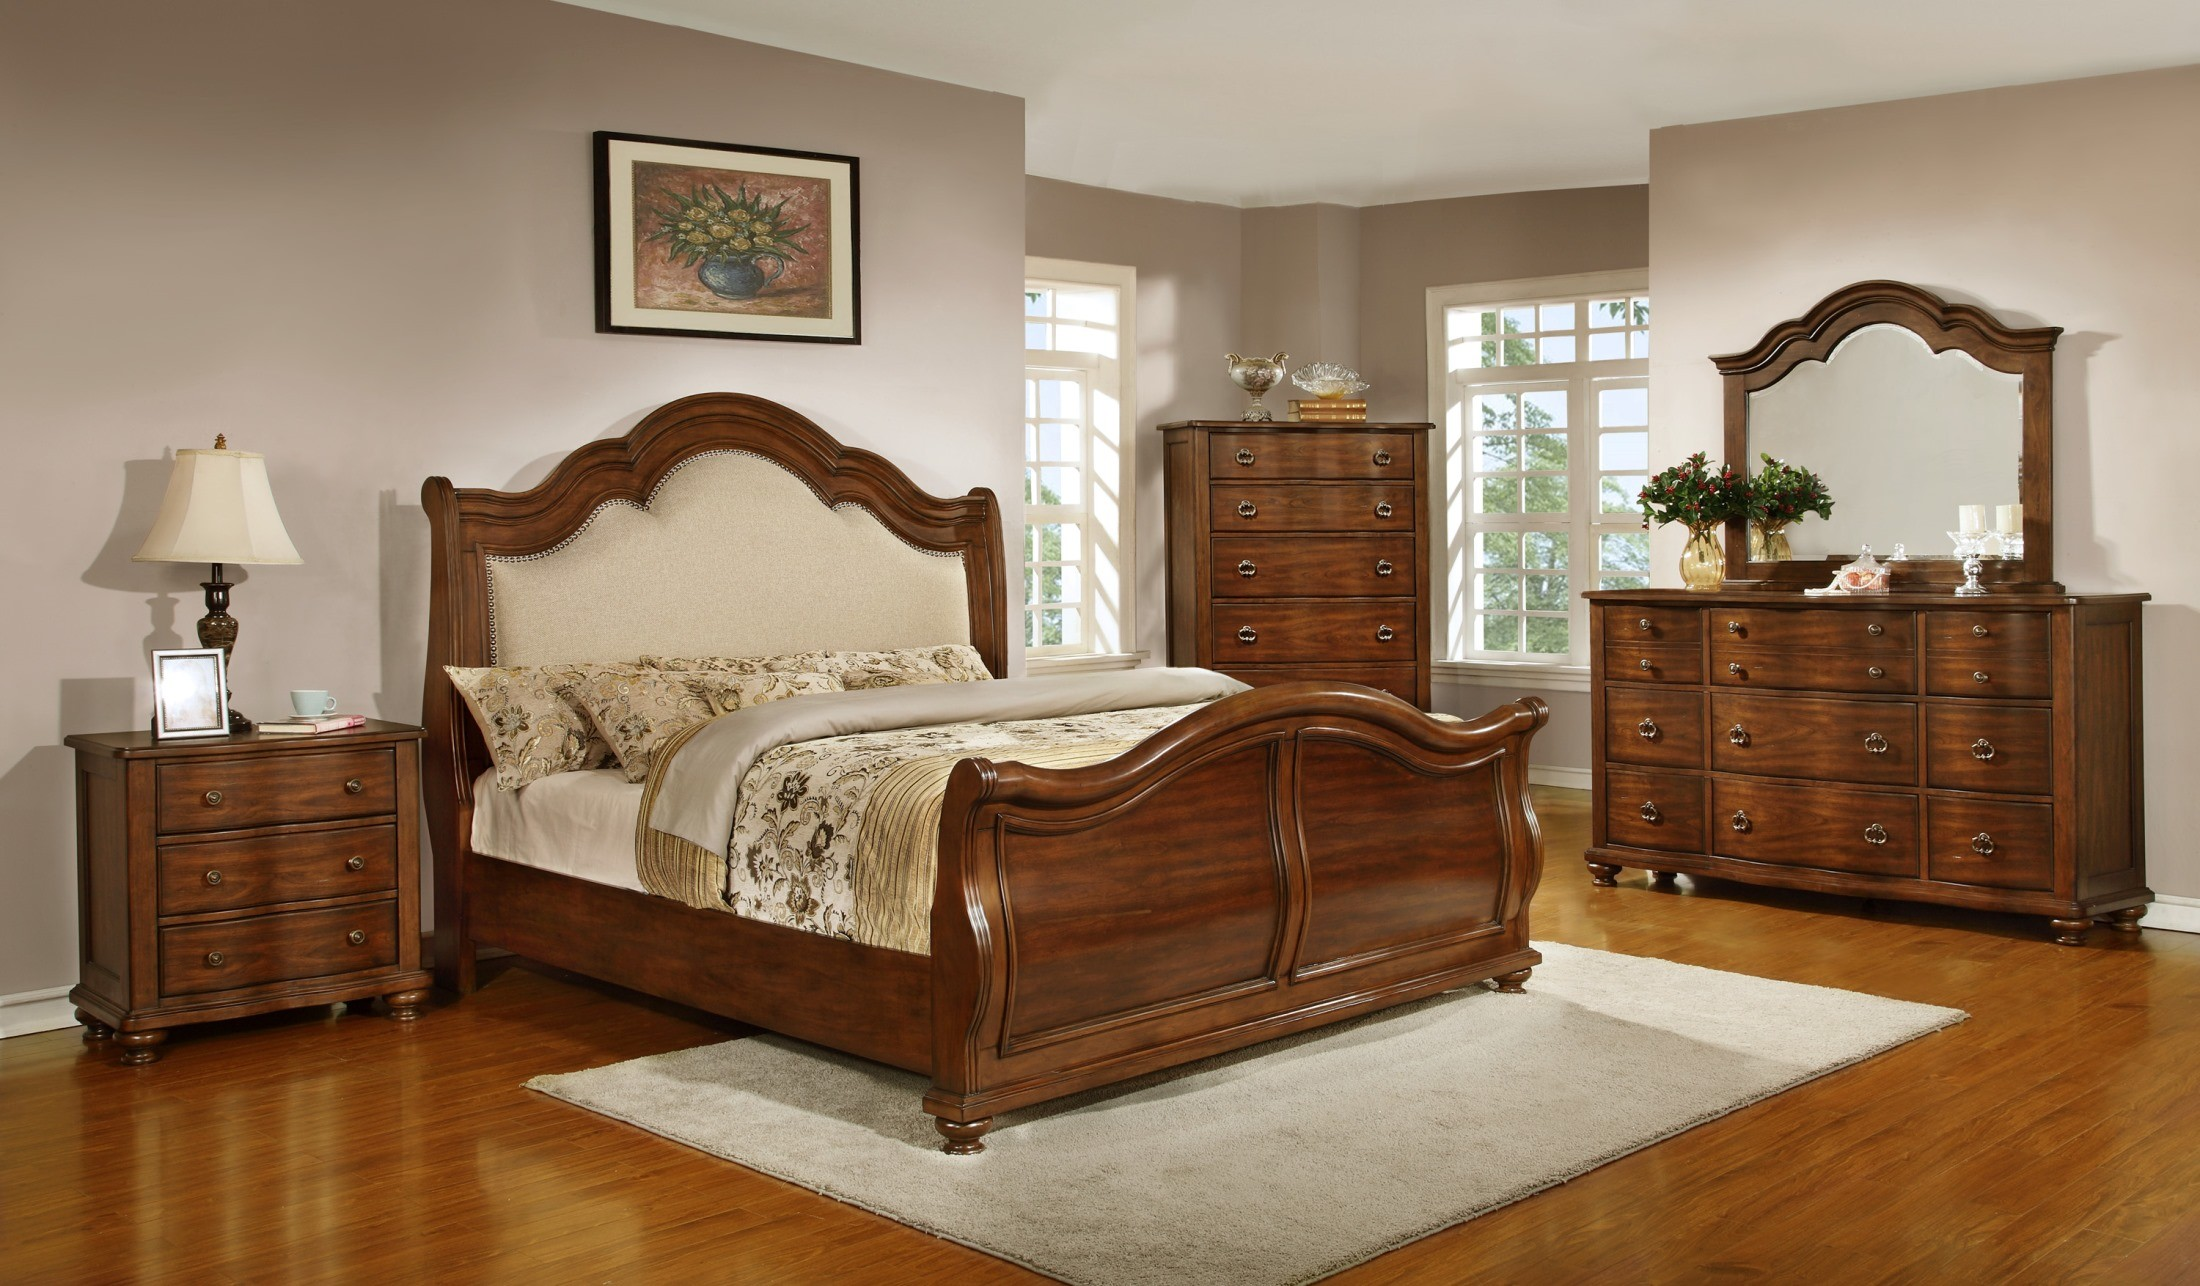 Davina Brown Cherry Sleigh Bedroom Set From Homelegance 1837 1 Coleman Furniture